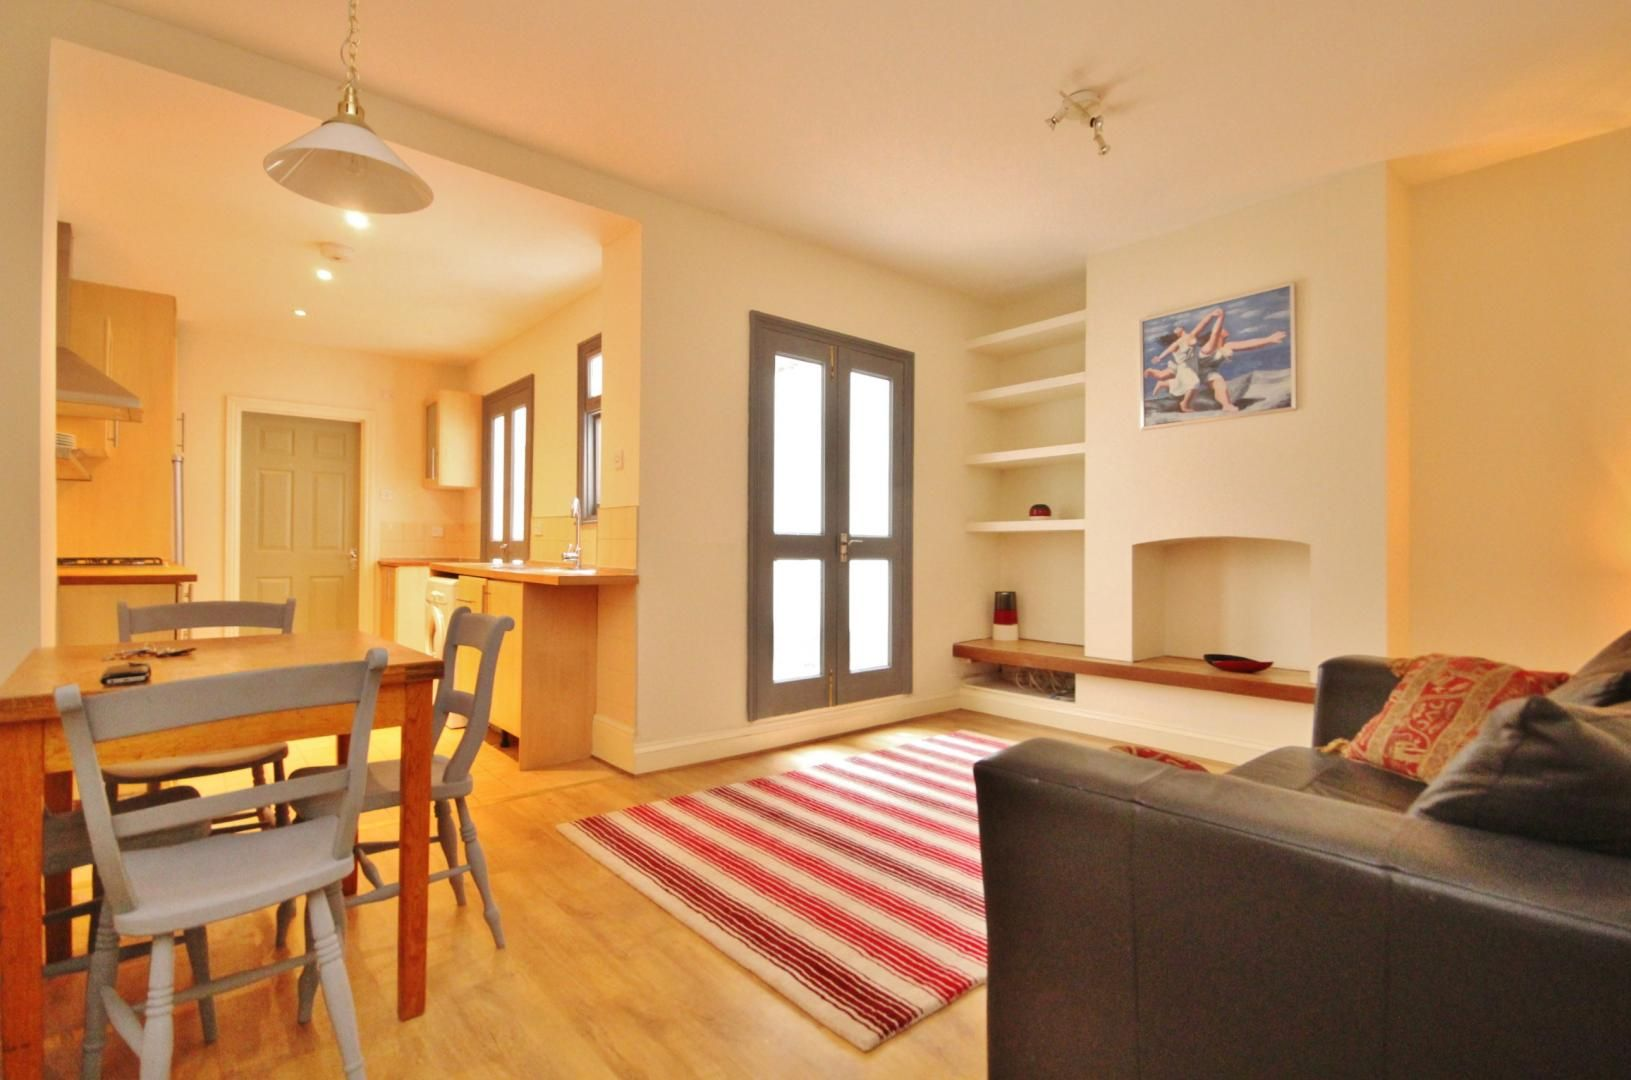 1 bed flat to rent in Woodstock Terrace - Property Image 1